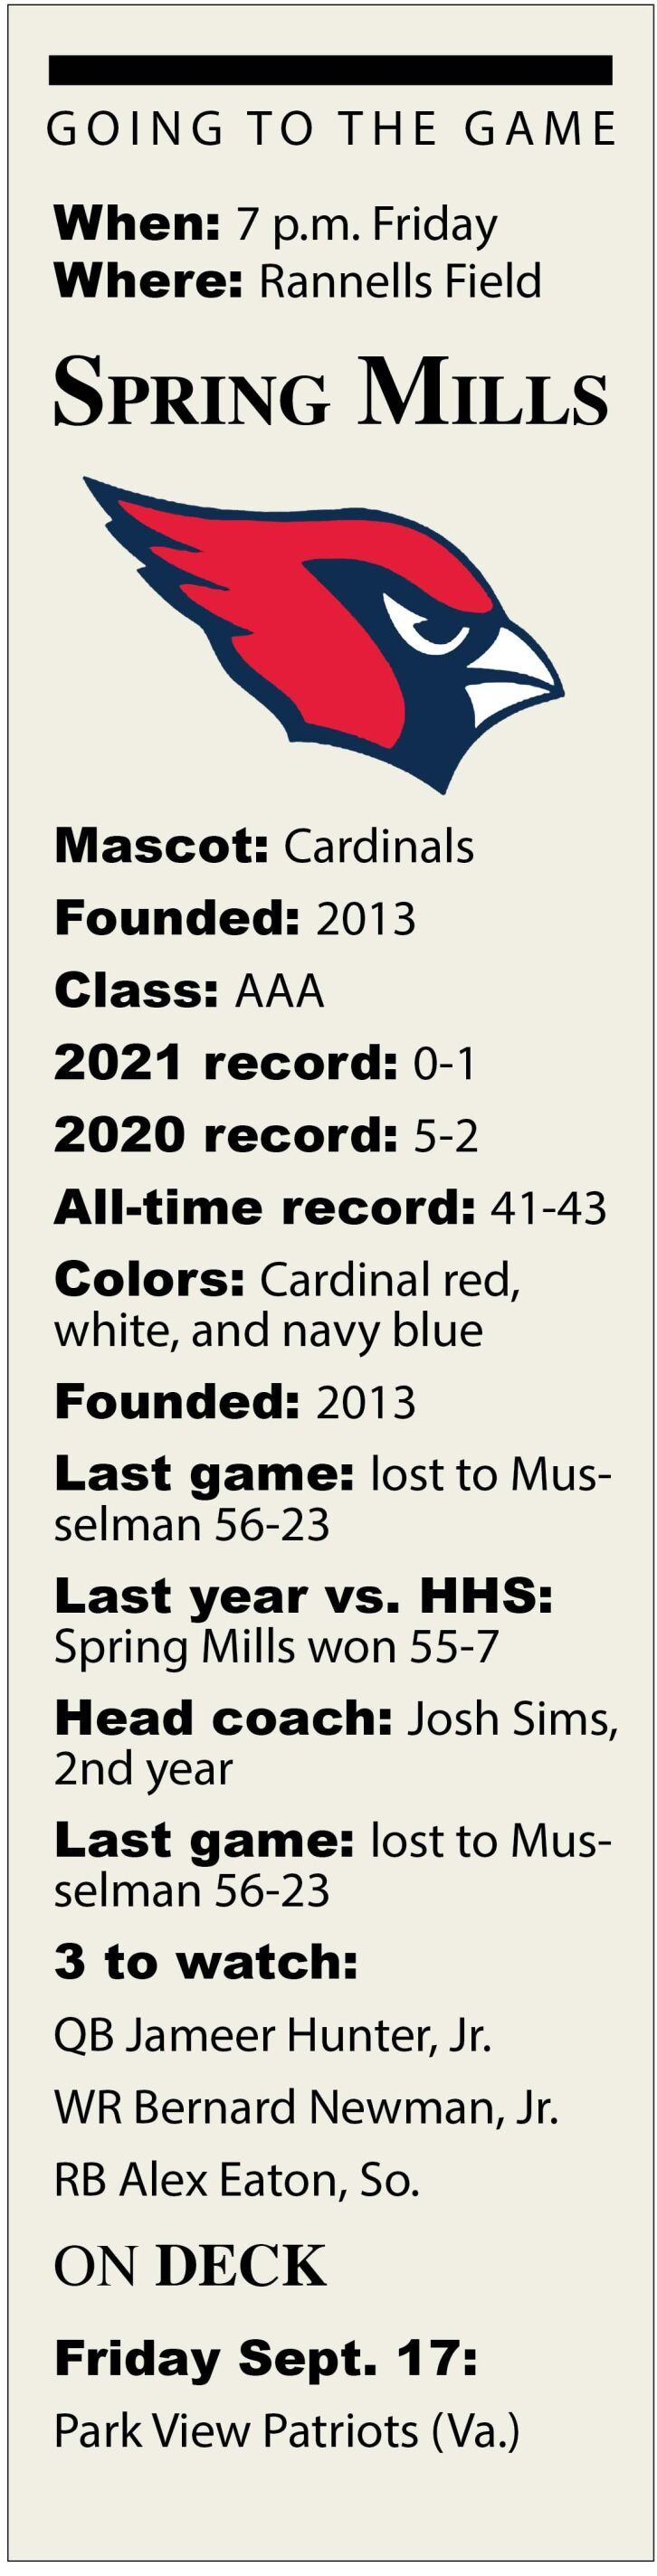 Spring Mills Game Preview